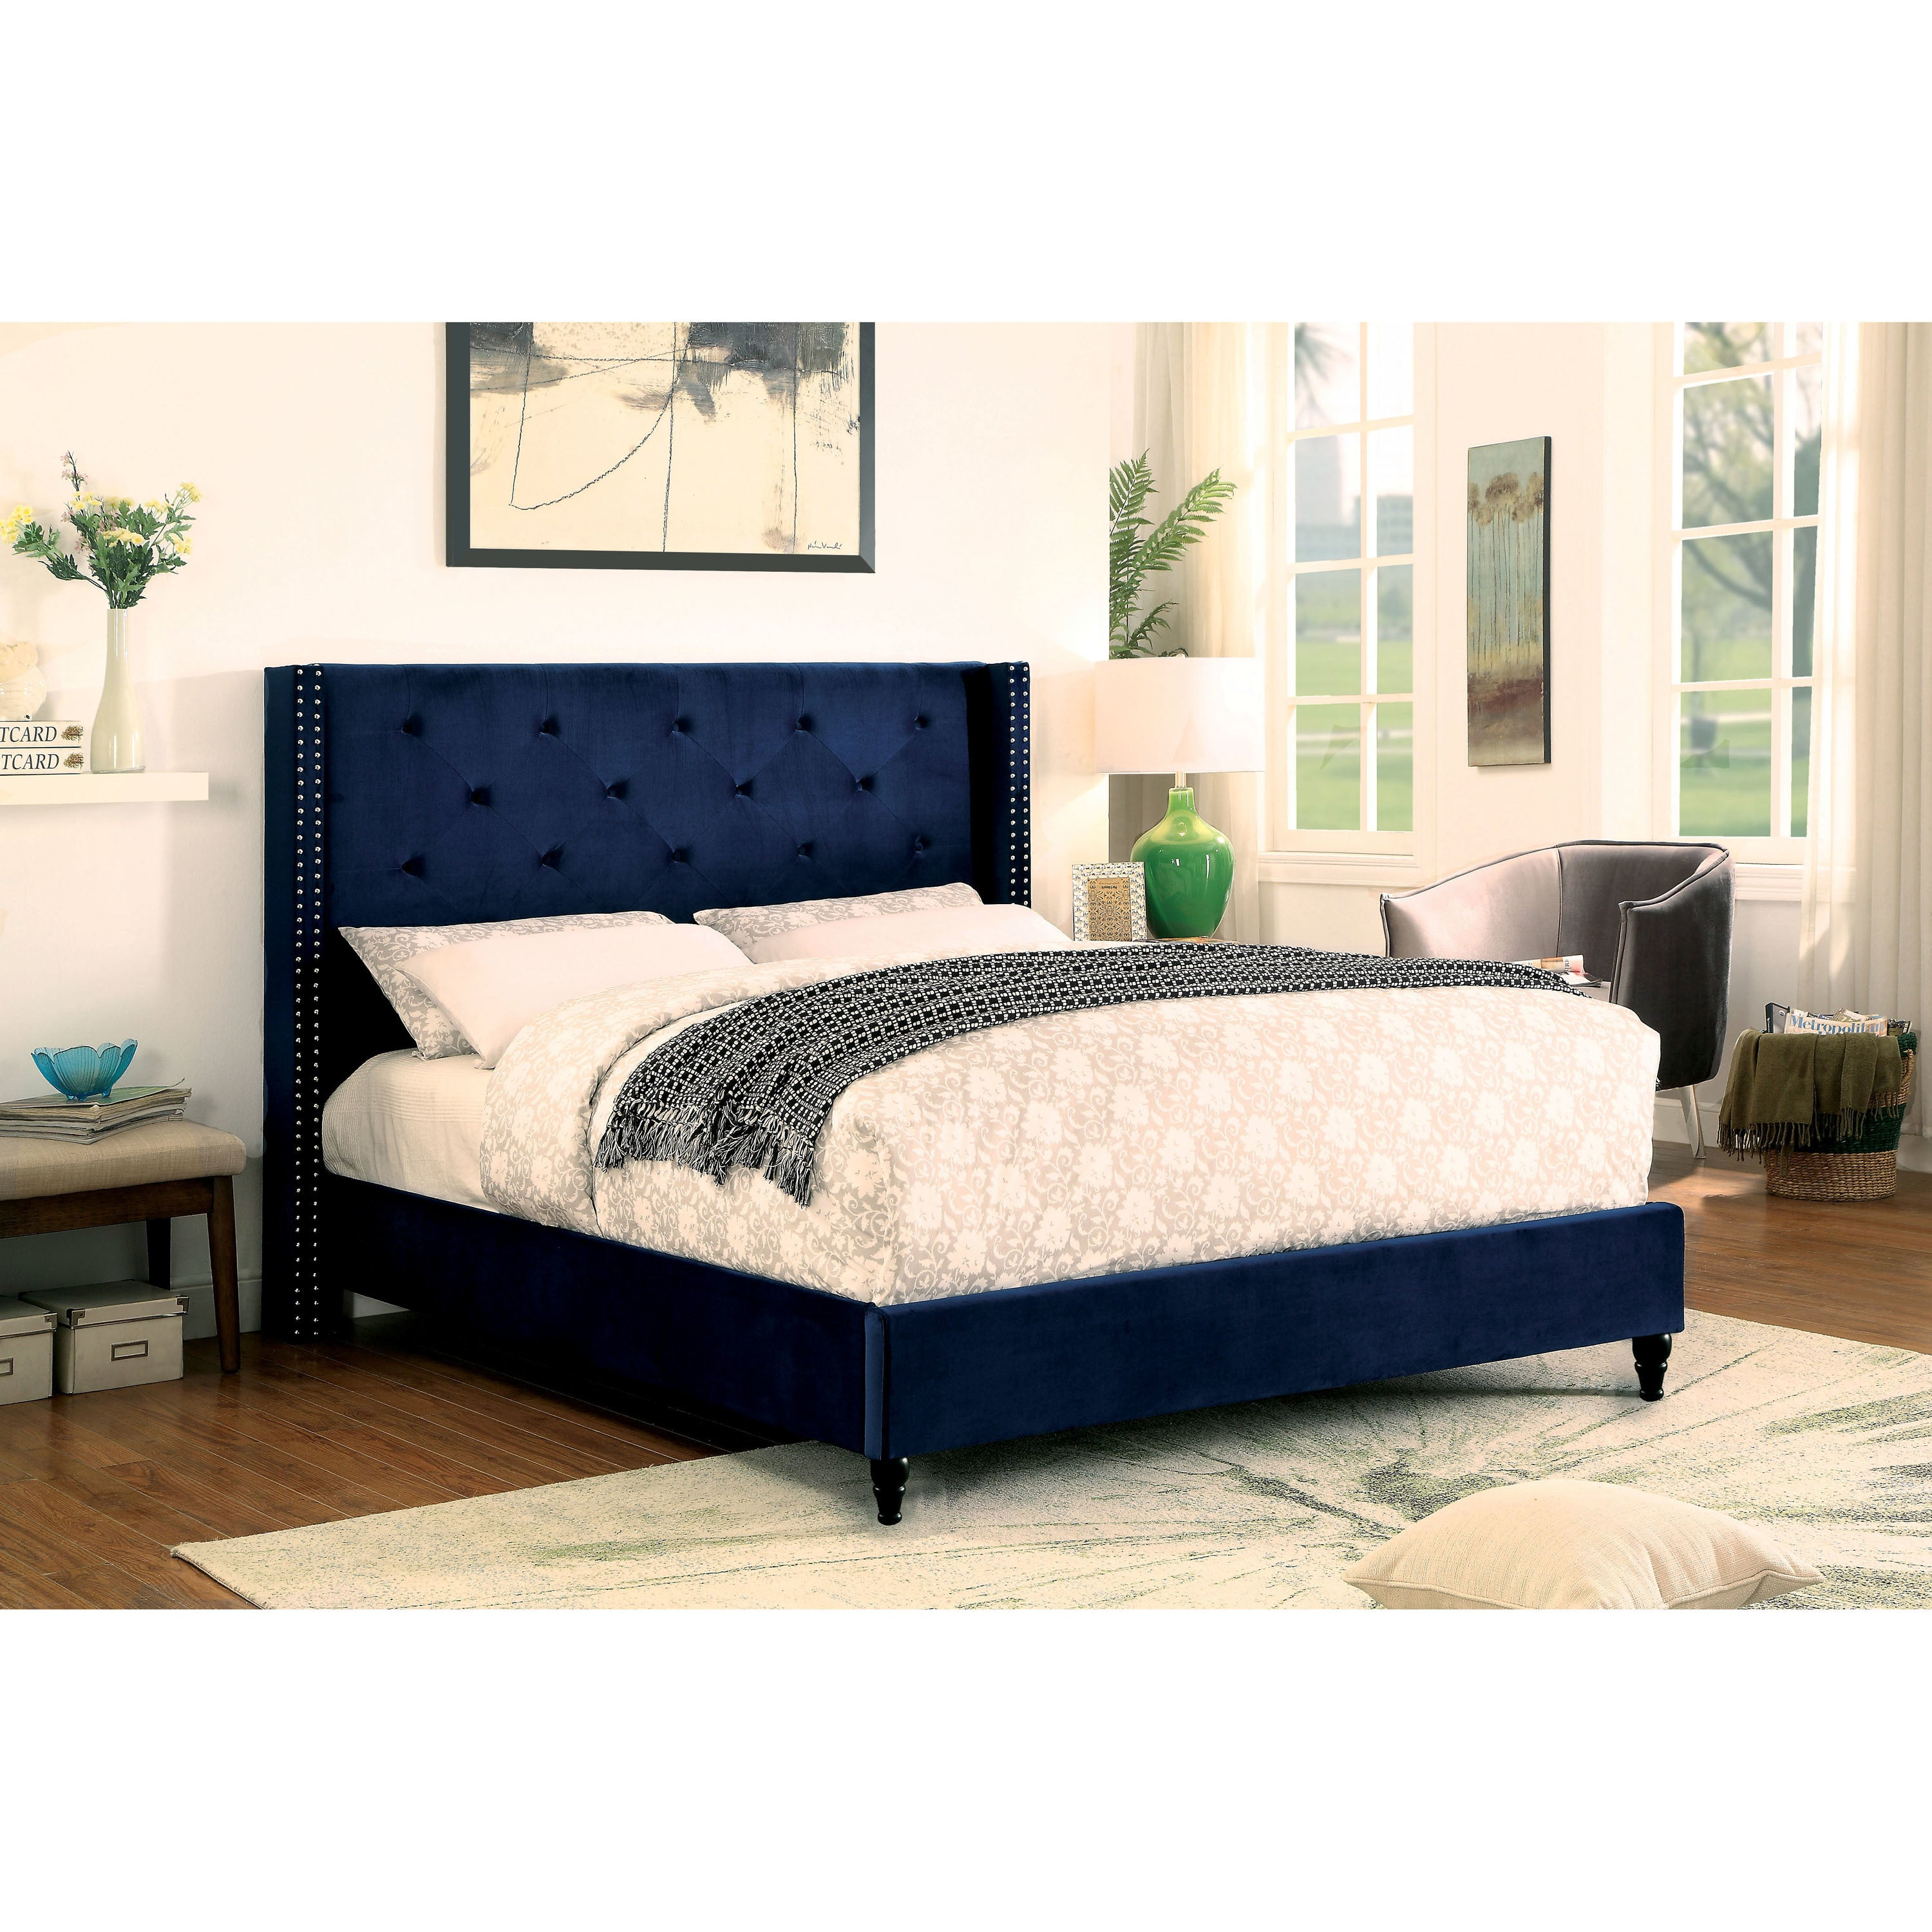 Shop Furniture Of America Kendrick Contemporary Navy Wingback Platform Bed    On Sale   Free Shipping Today   Overstock.com   19974170